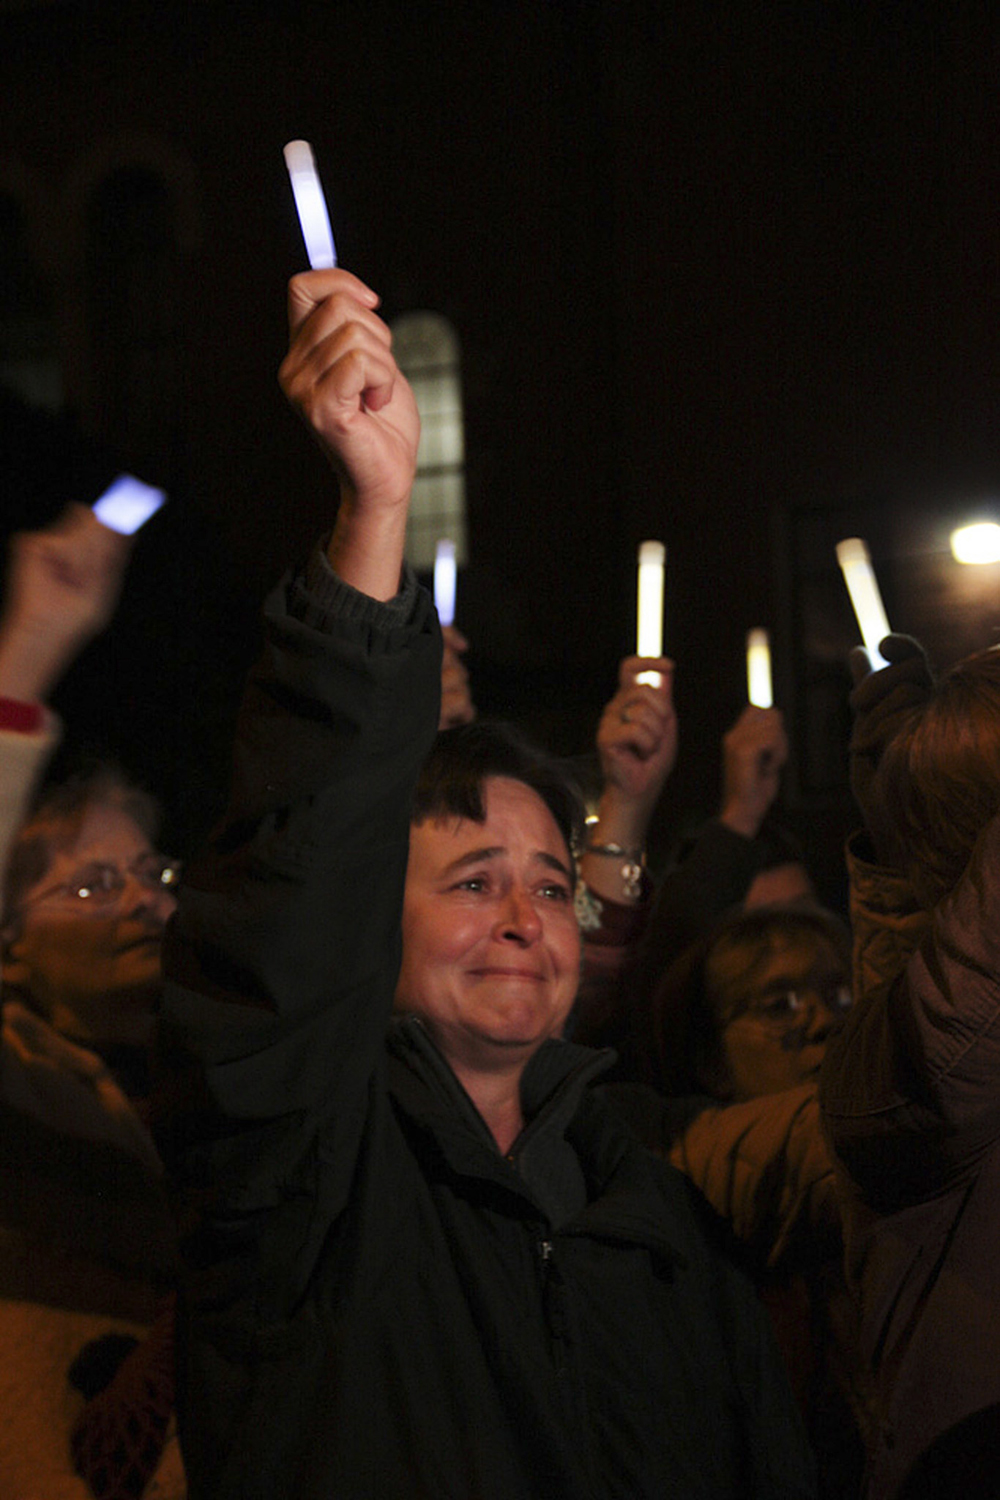 Kelly Griffith raises her glowstick at the candlelight vigil one year after the Jan. 8, 2011 shooting killed six people and injured 13, including then-Rep. Gabrielle Giffords in Tucson, Arizona.